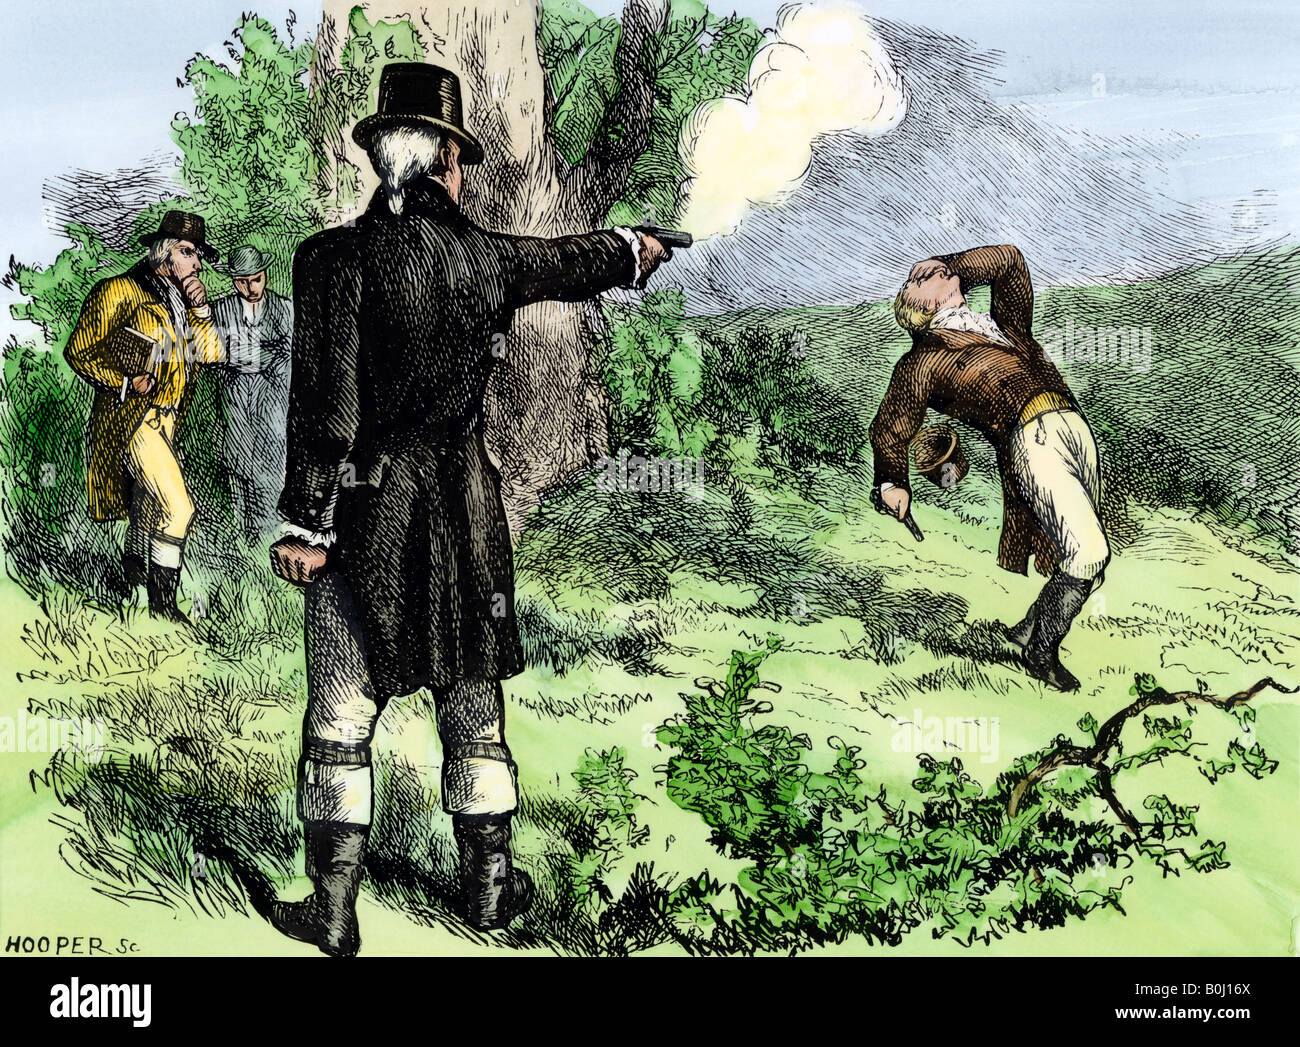 Alexander Hamilton killed in a duel with Aaron Burr 1804 - Stock Image